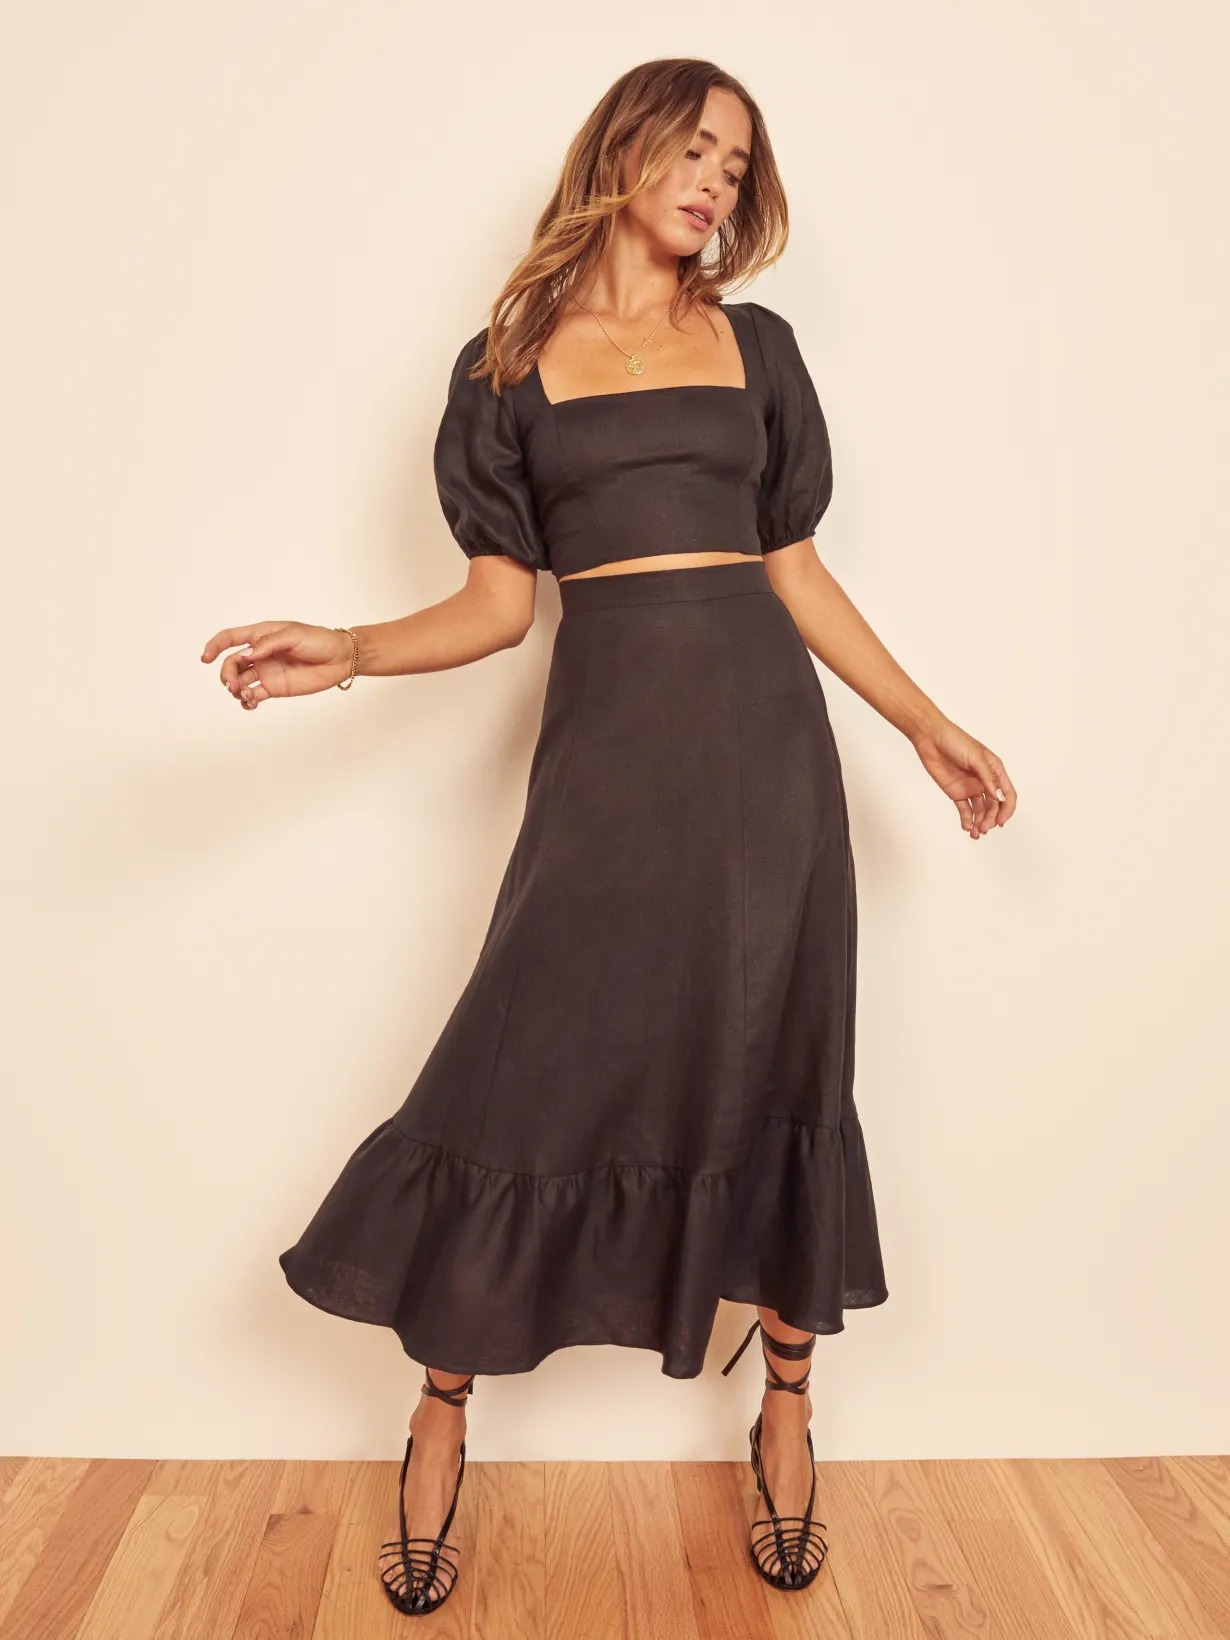 short two piece black top and skirt set for a wedding